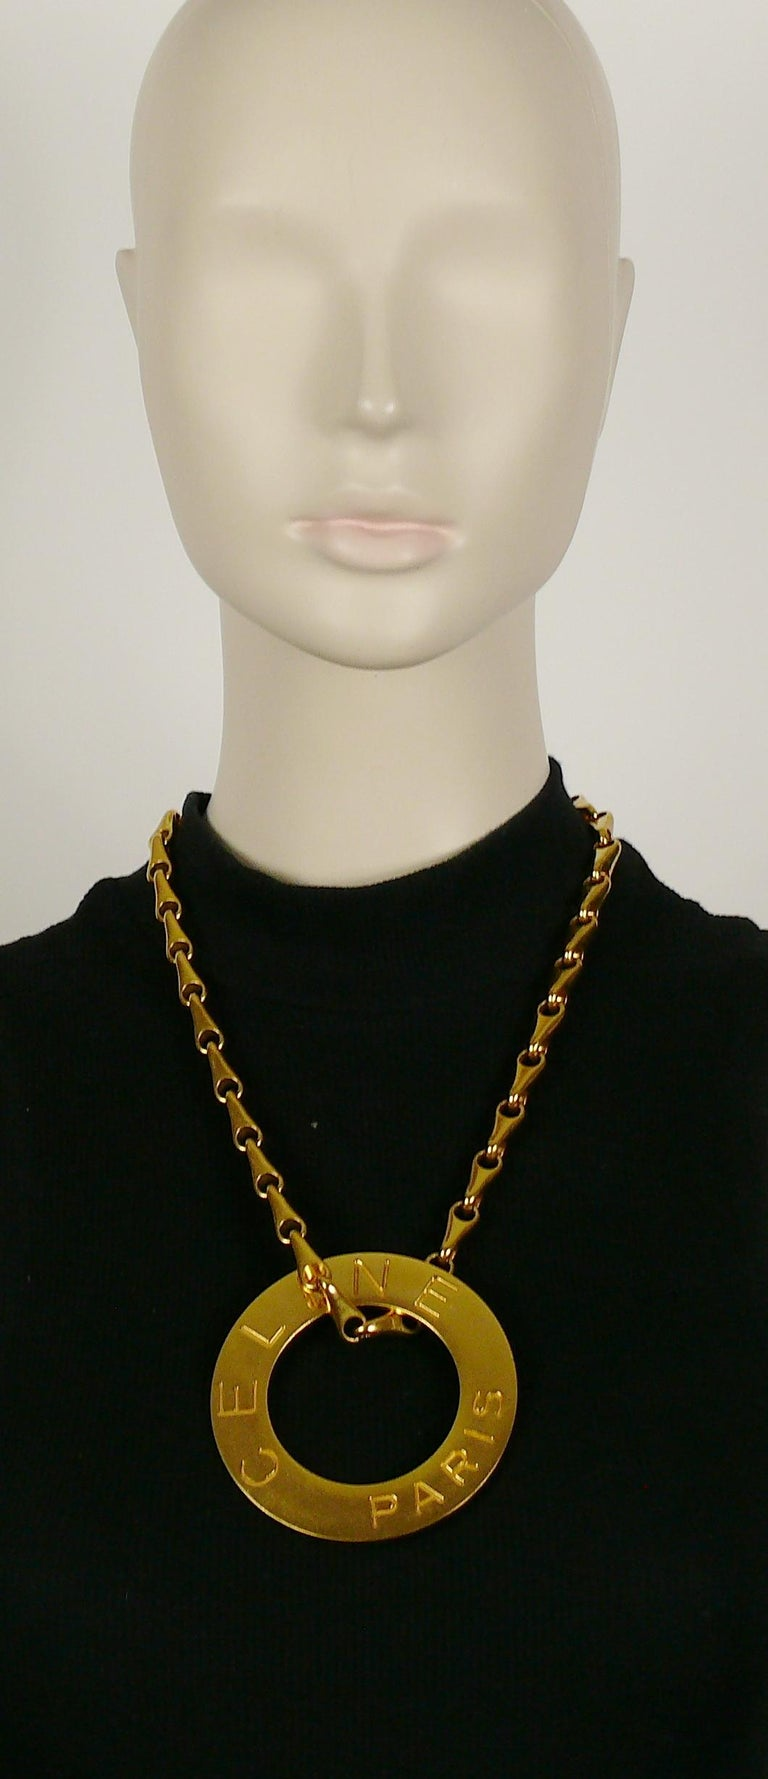 CELINE vintage 1990 gold toned chunky chain featuring a massive disc pendant embossed CELINE PARIS.  Secure clasp closure.  Embossed CELINE PARIS on the clasp. Embossed CELINE PARIS 90 MADE IN ITALY on the reverse of the pendant.  Indicative